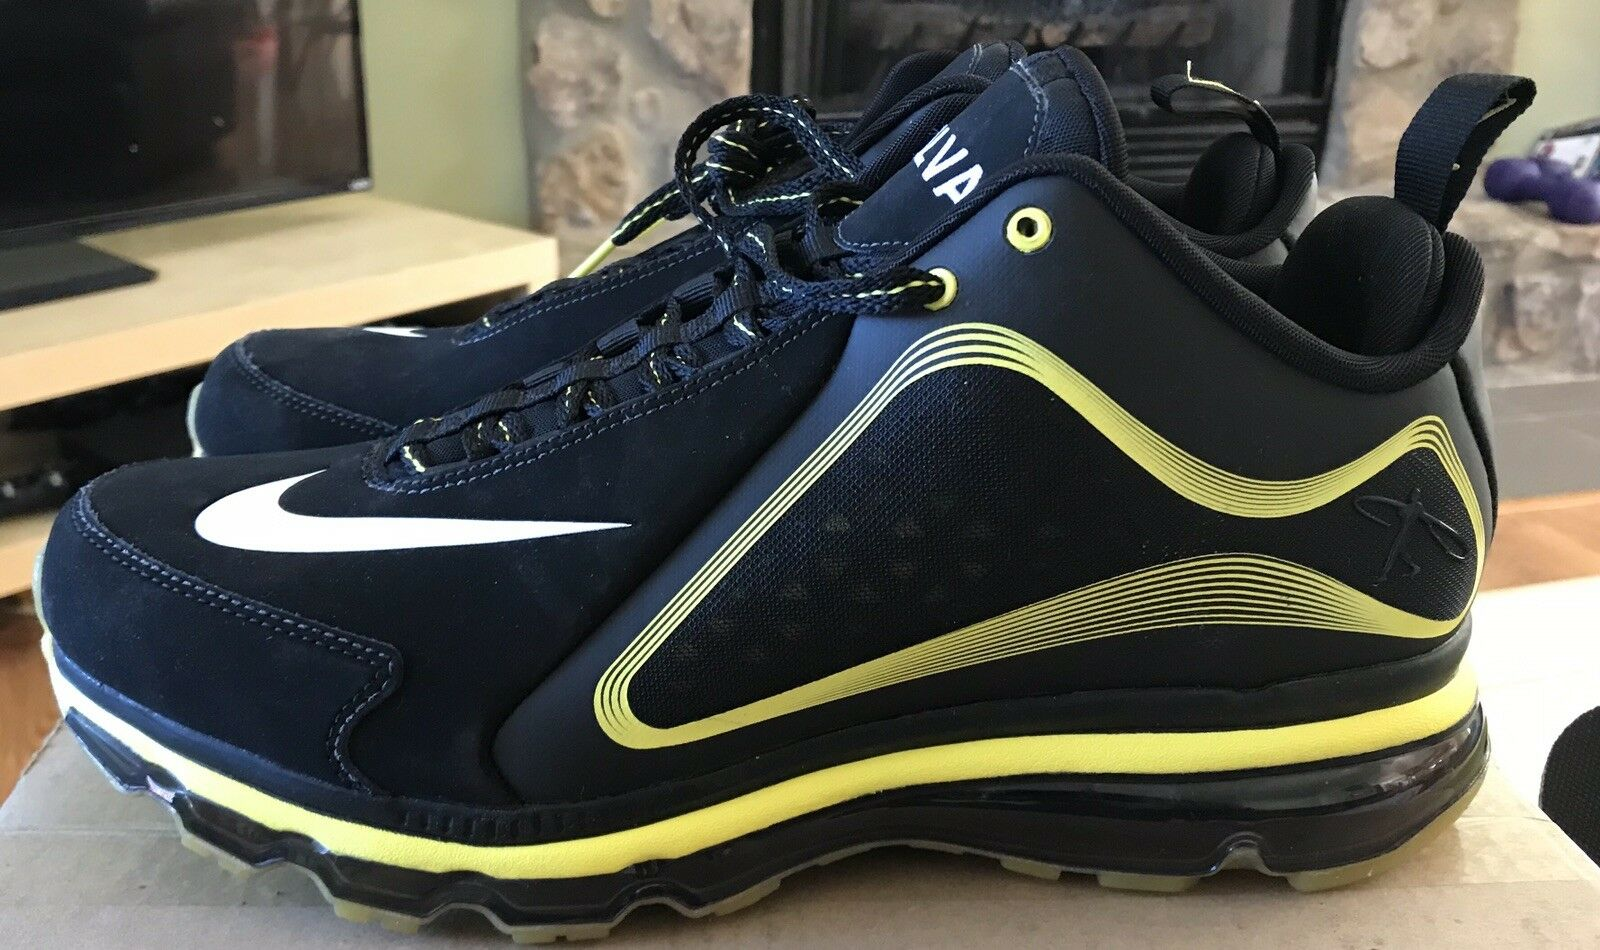 DS Nike Air Griffey Max 360 Anderson Silva PE Promo Sample Size 13